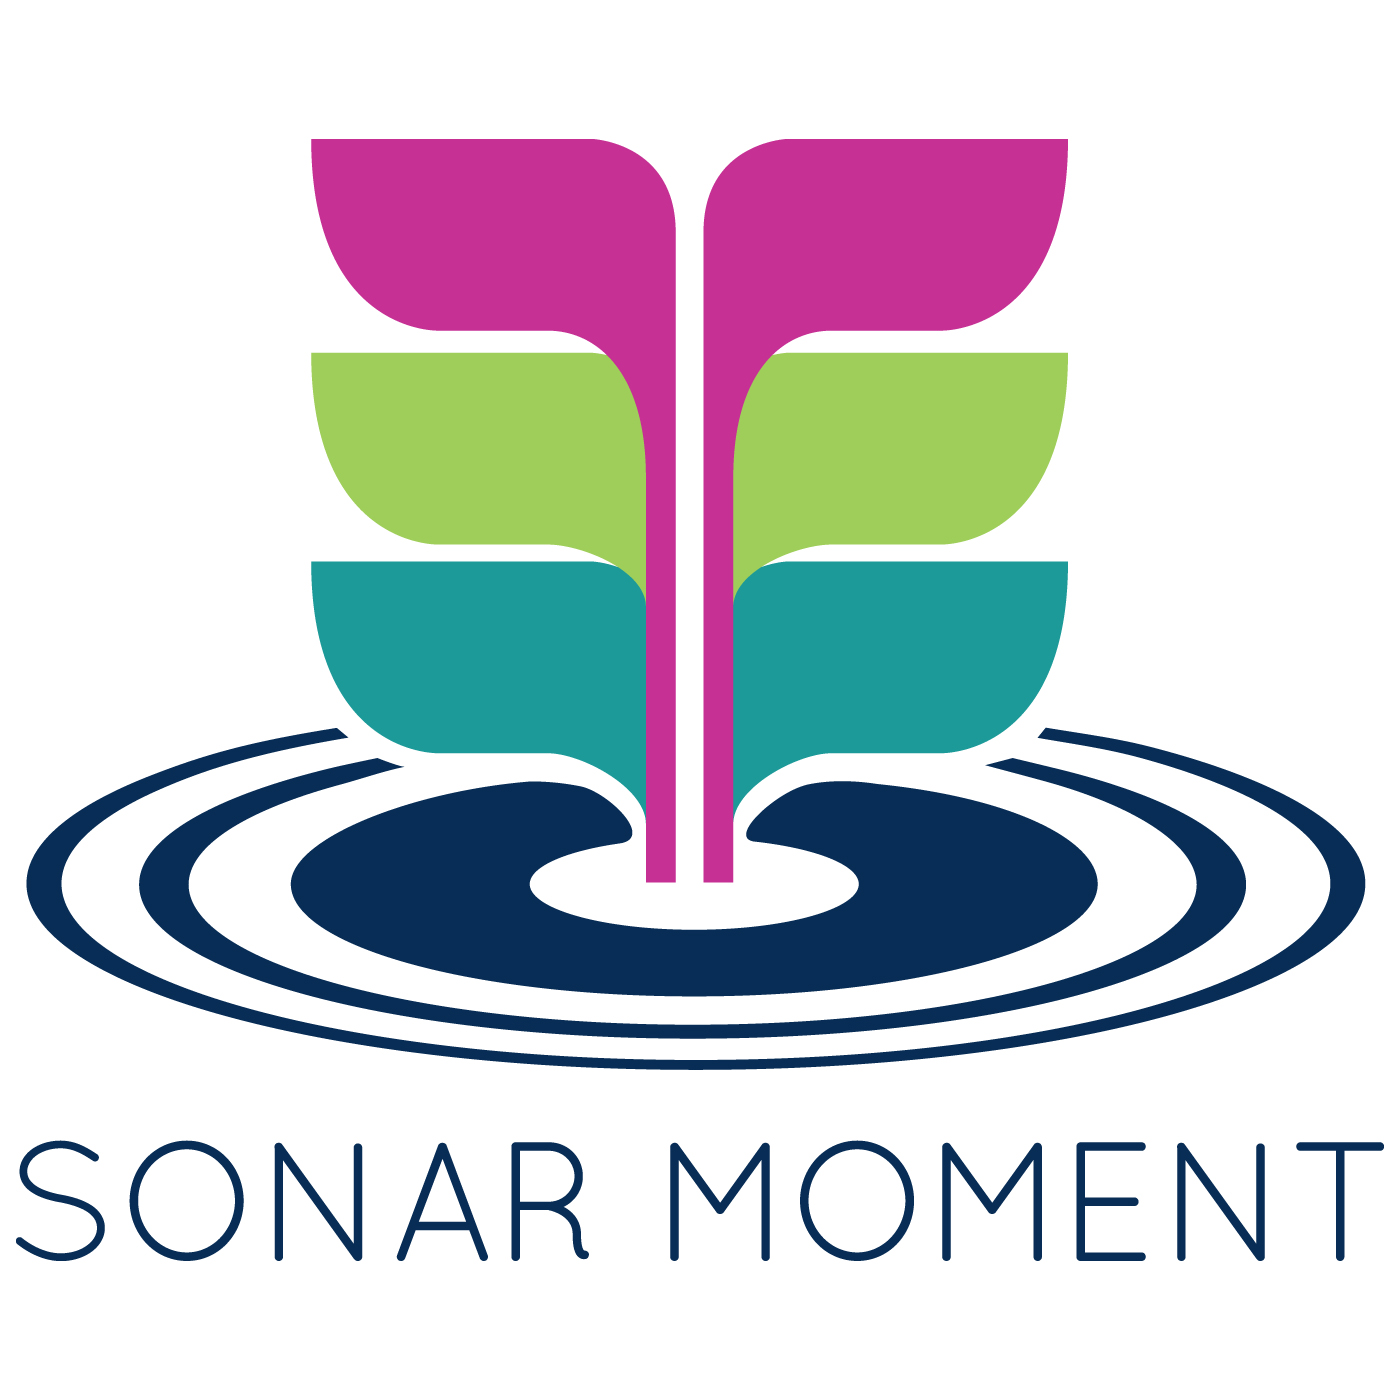 Sonar Moment - Reflections on leadership from CEOs in the Pacific Northwest